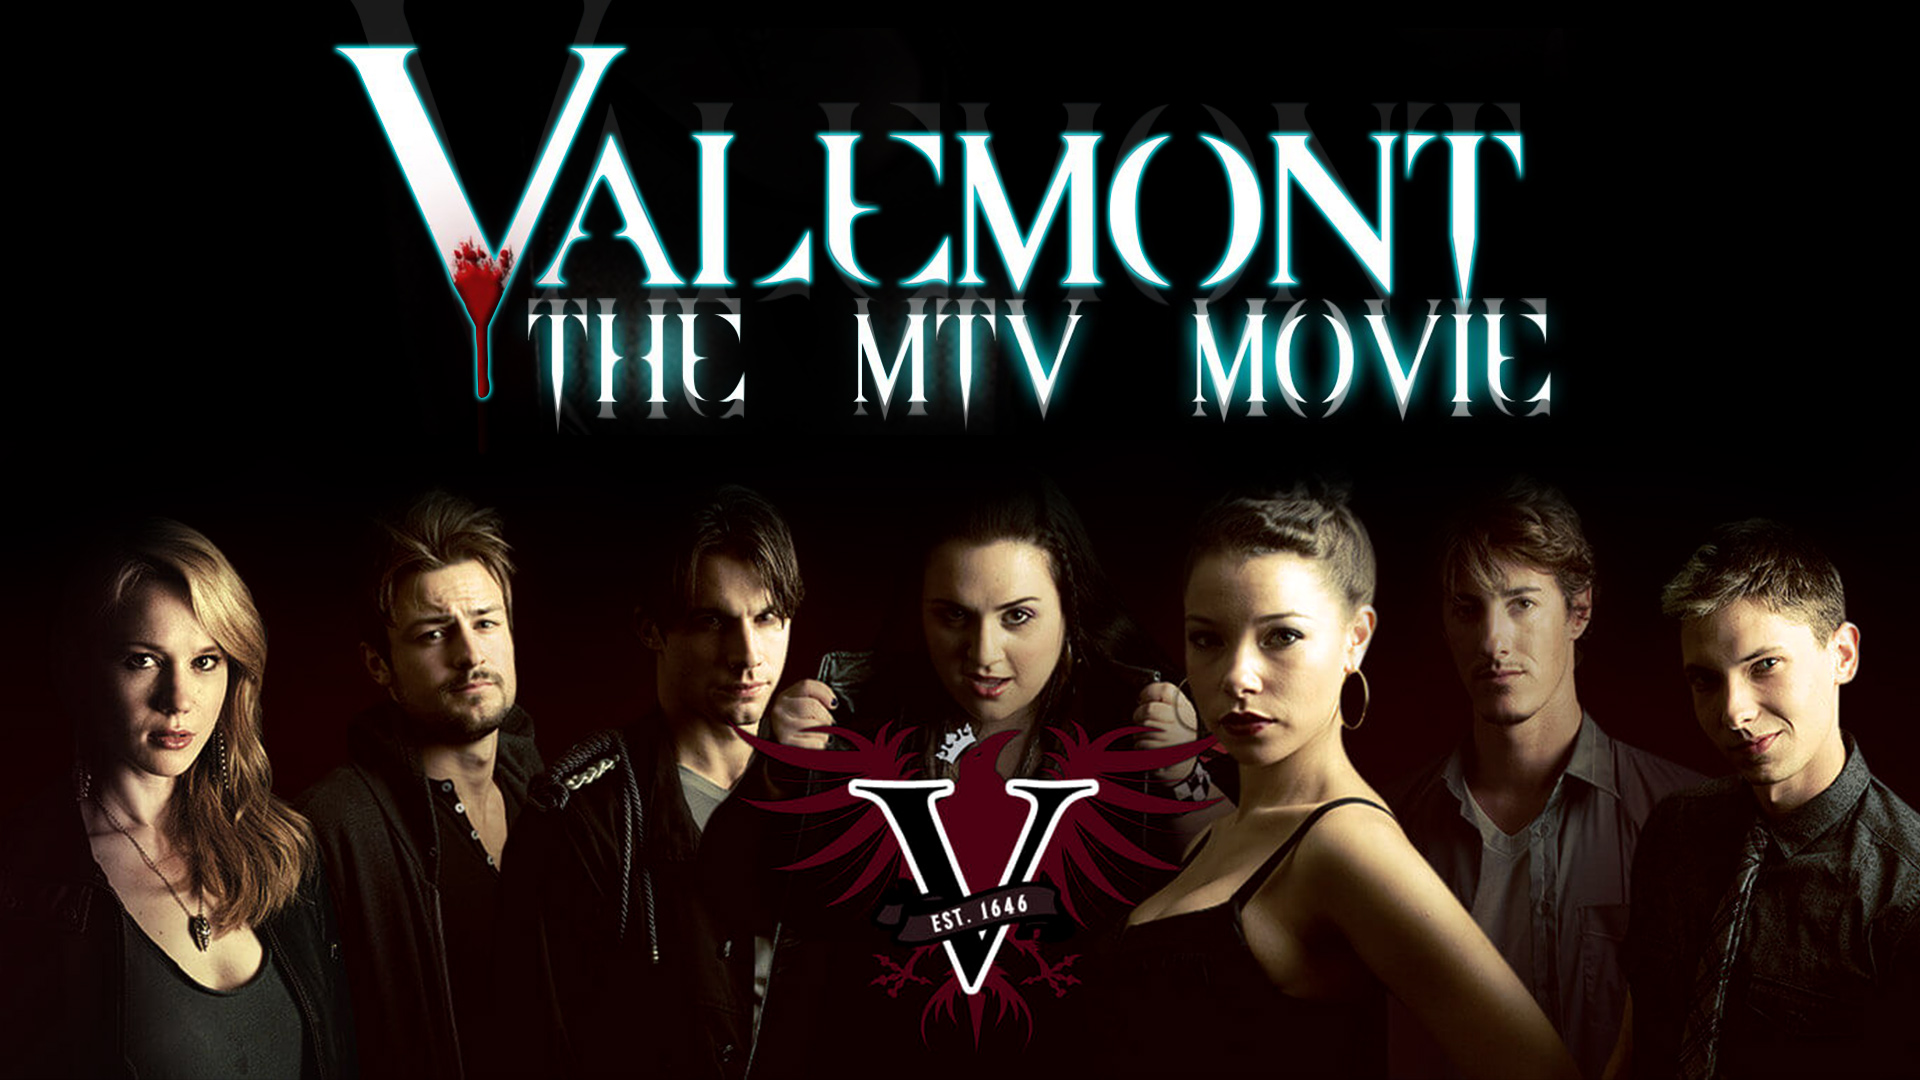 Valemont - The MTV Movie